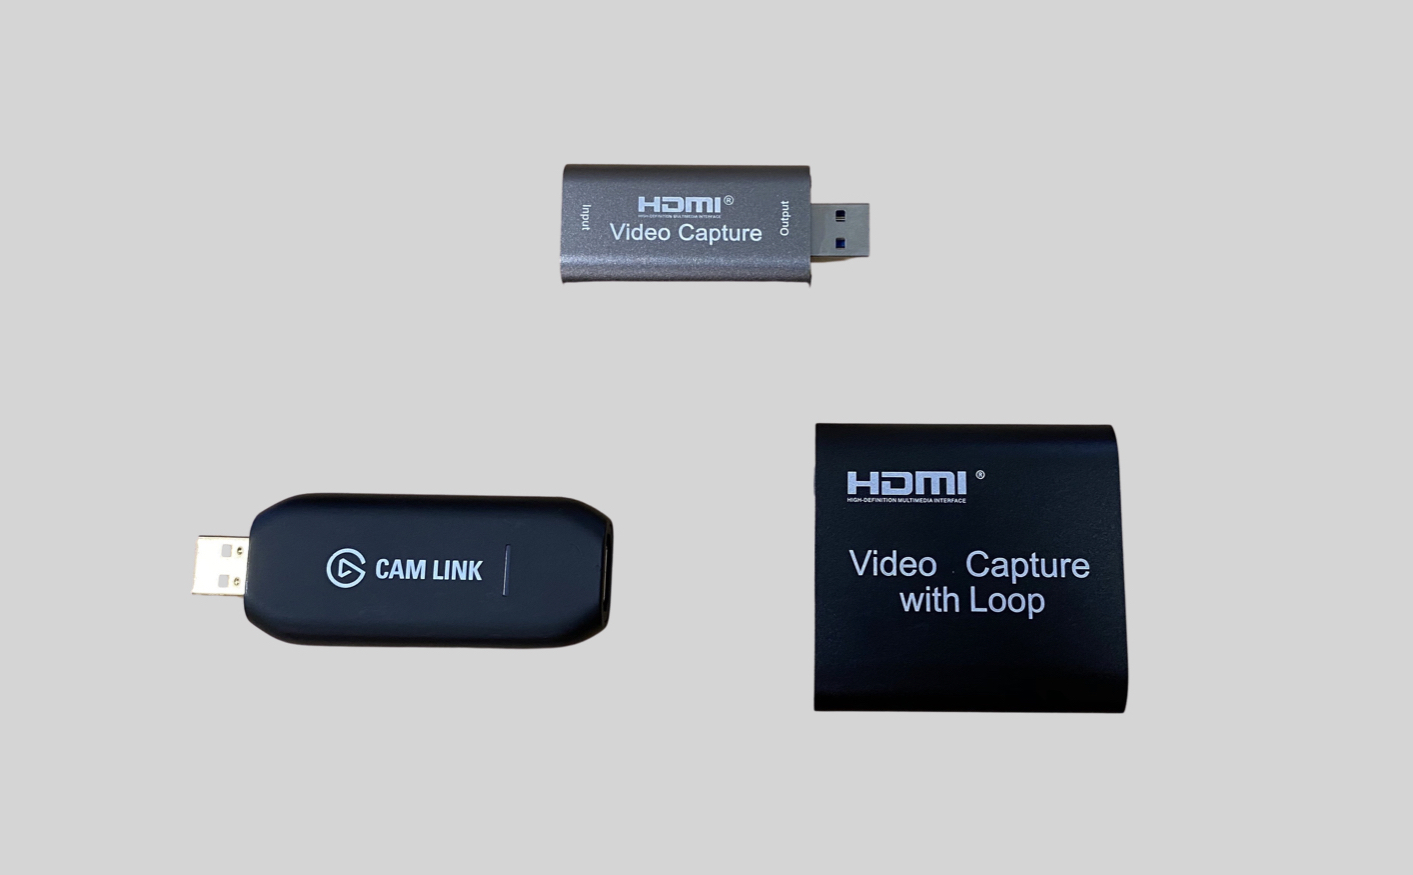 Inexpensive HDMI capture sticks solve camera shyness types 1, 2 & 3 in many cases 4